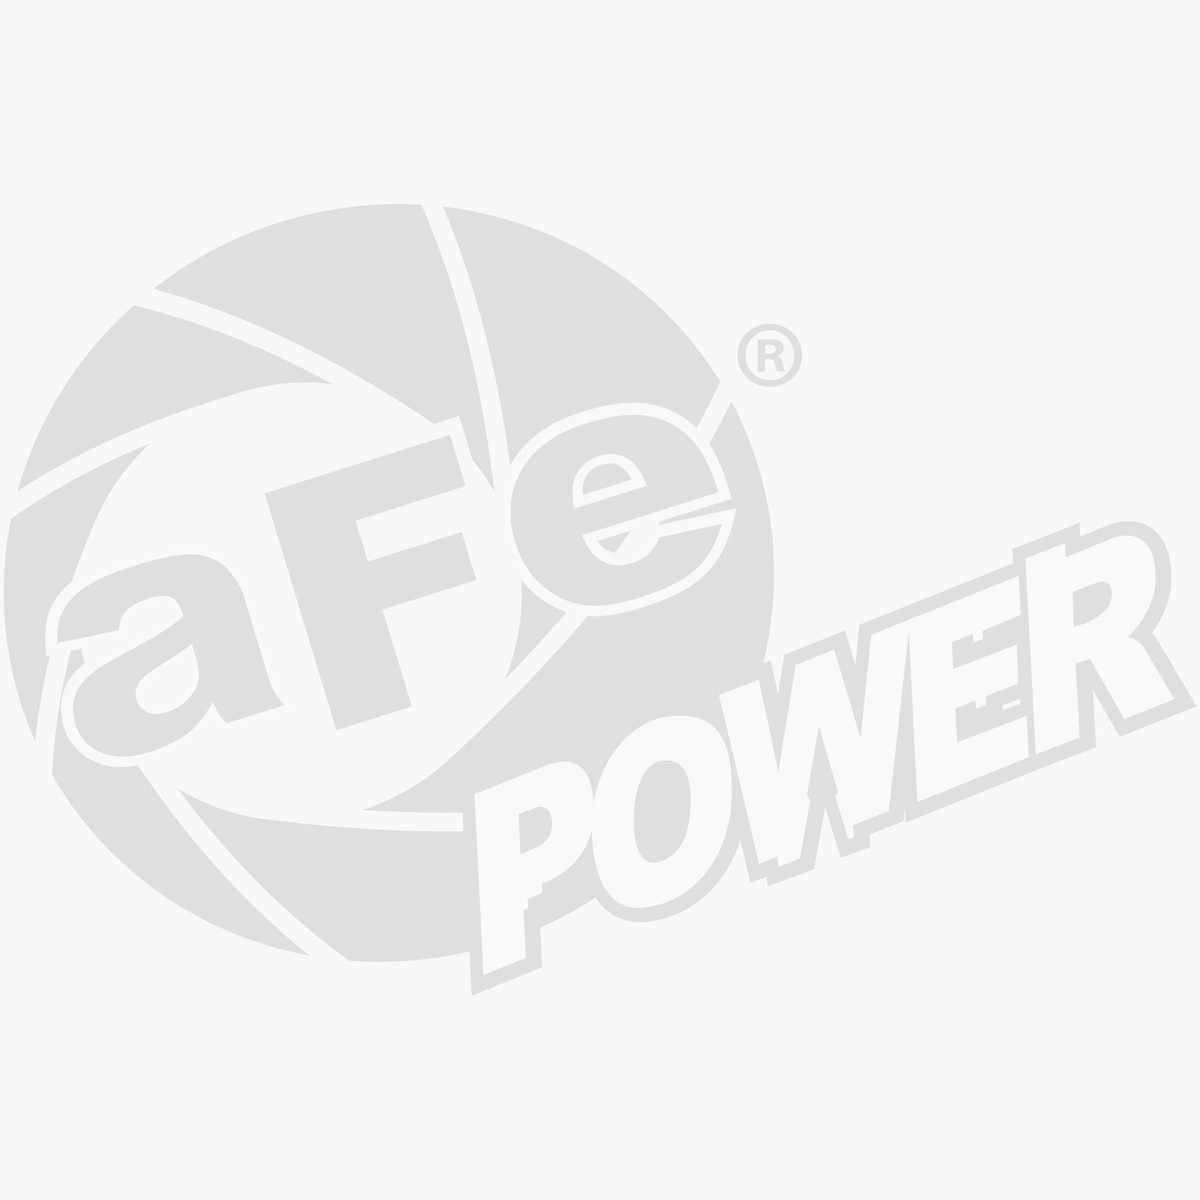 aFe POWER 18-11105 Round Racing Pro 5R Air Filter